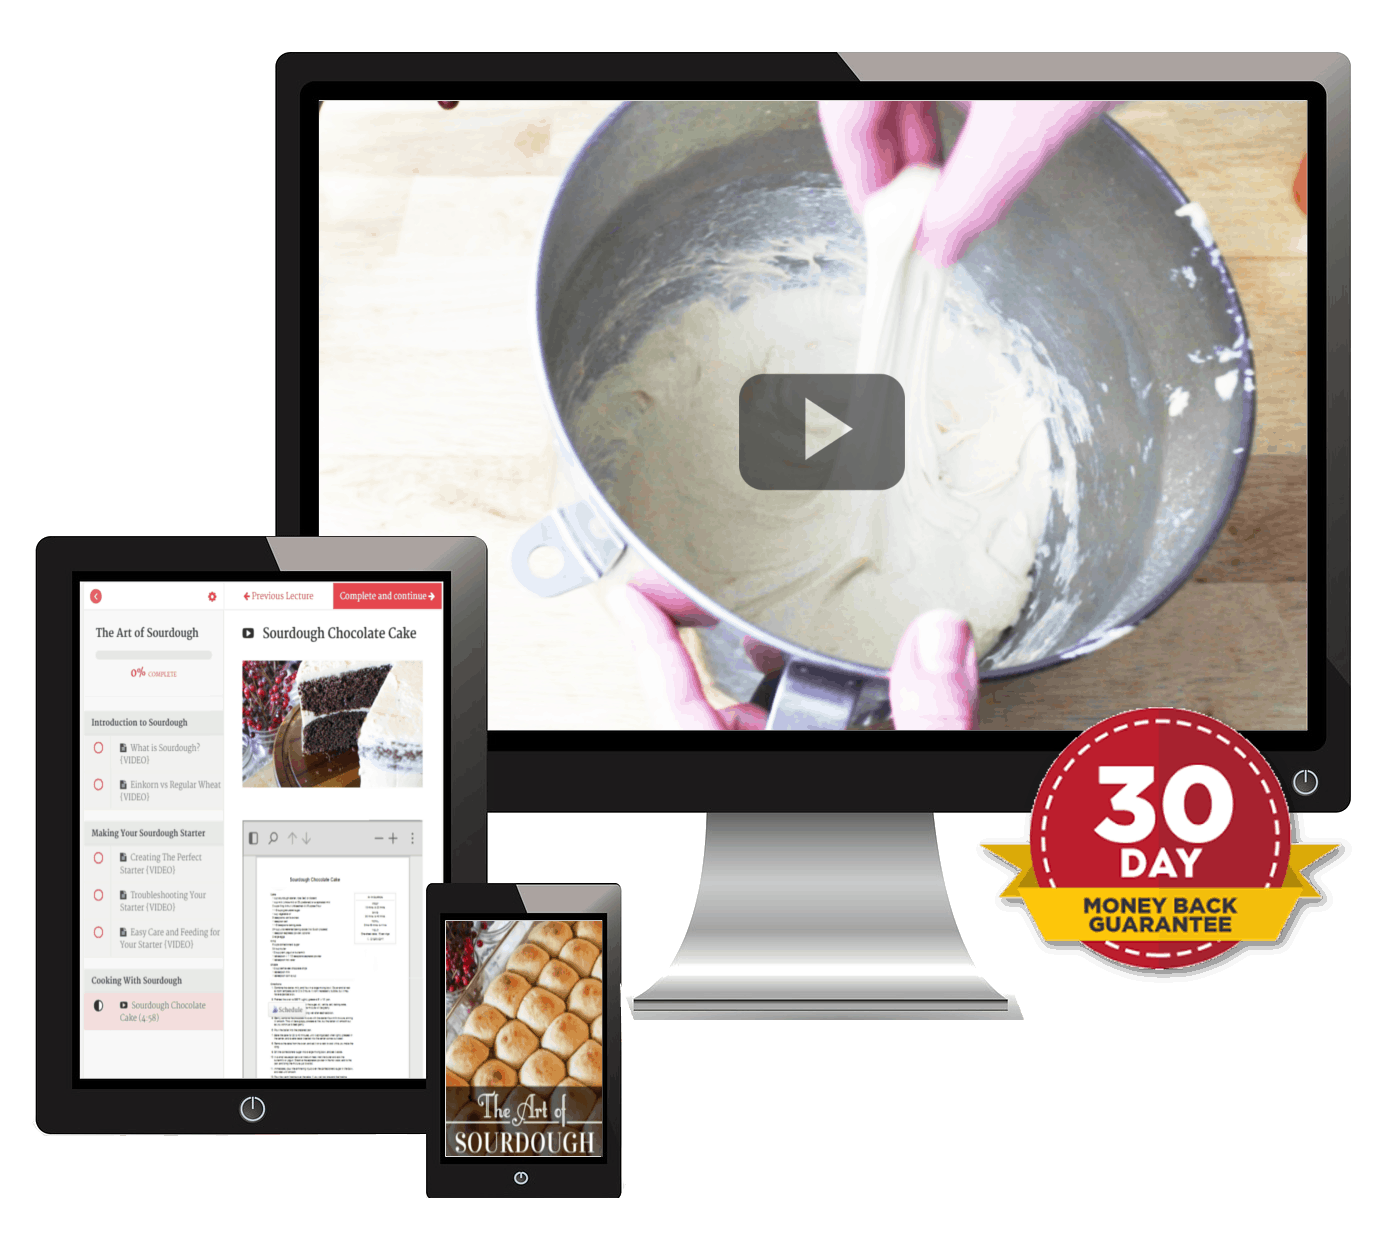 The Art of Sourdough eCourse is available at this low price for a limited time.